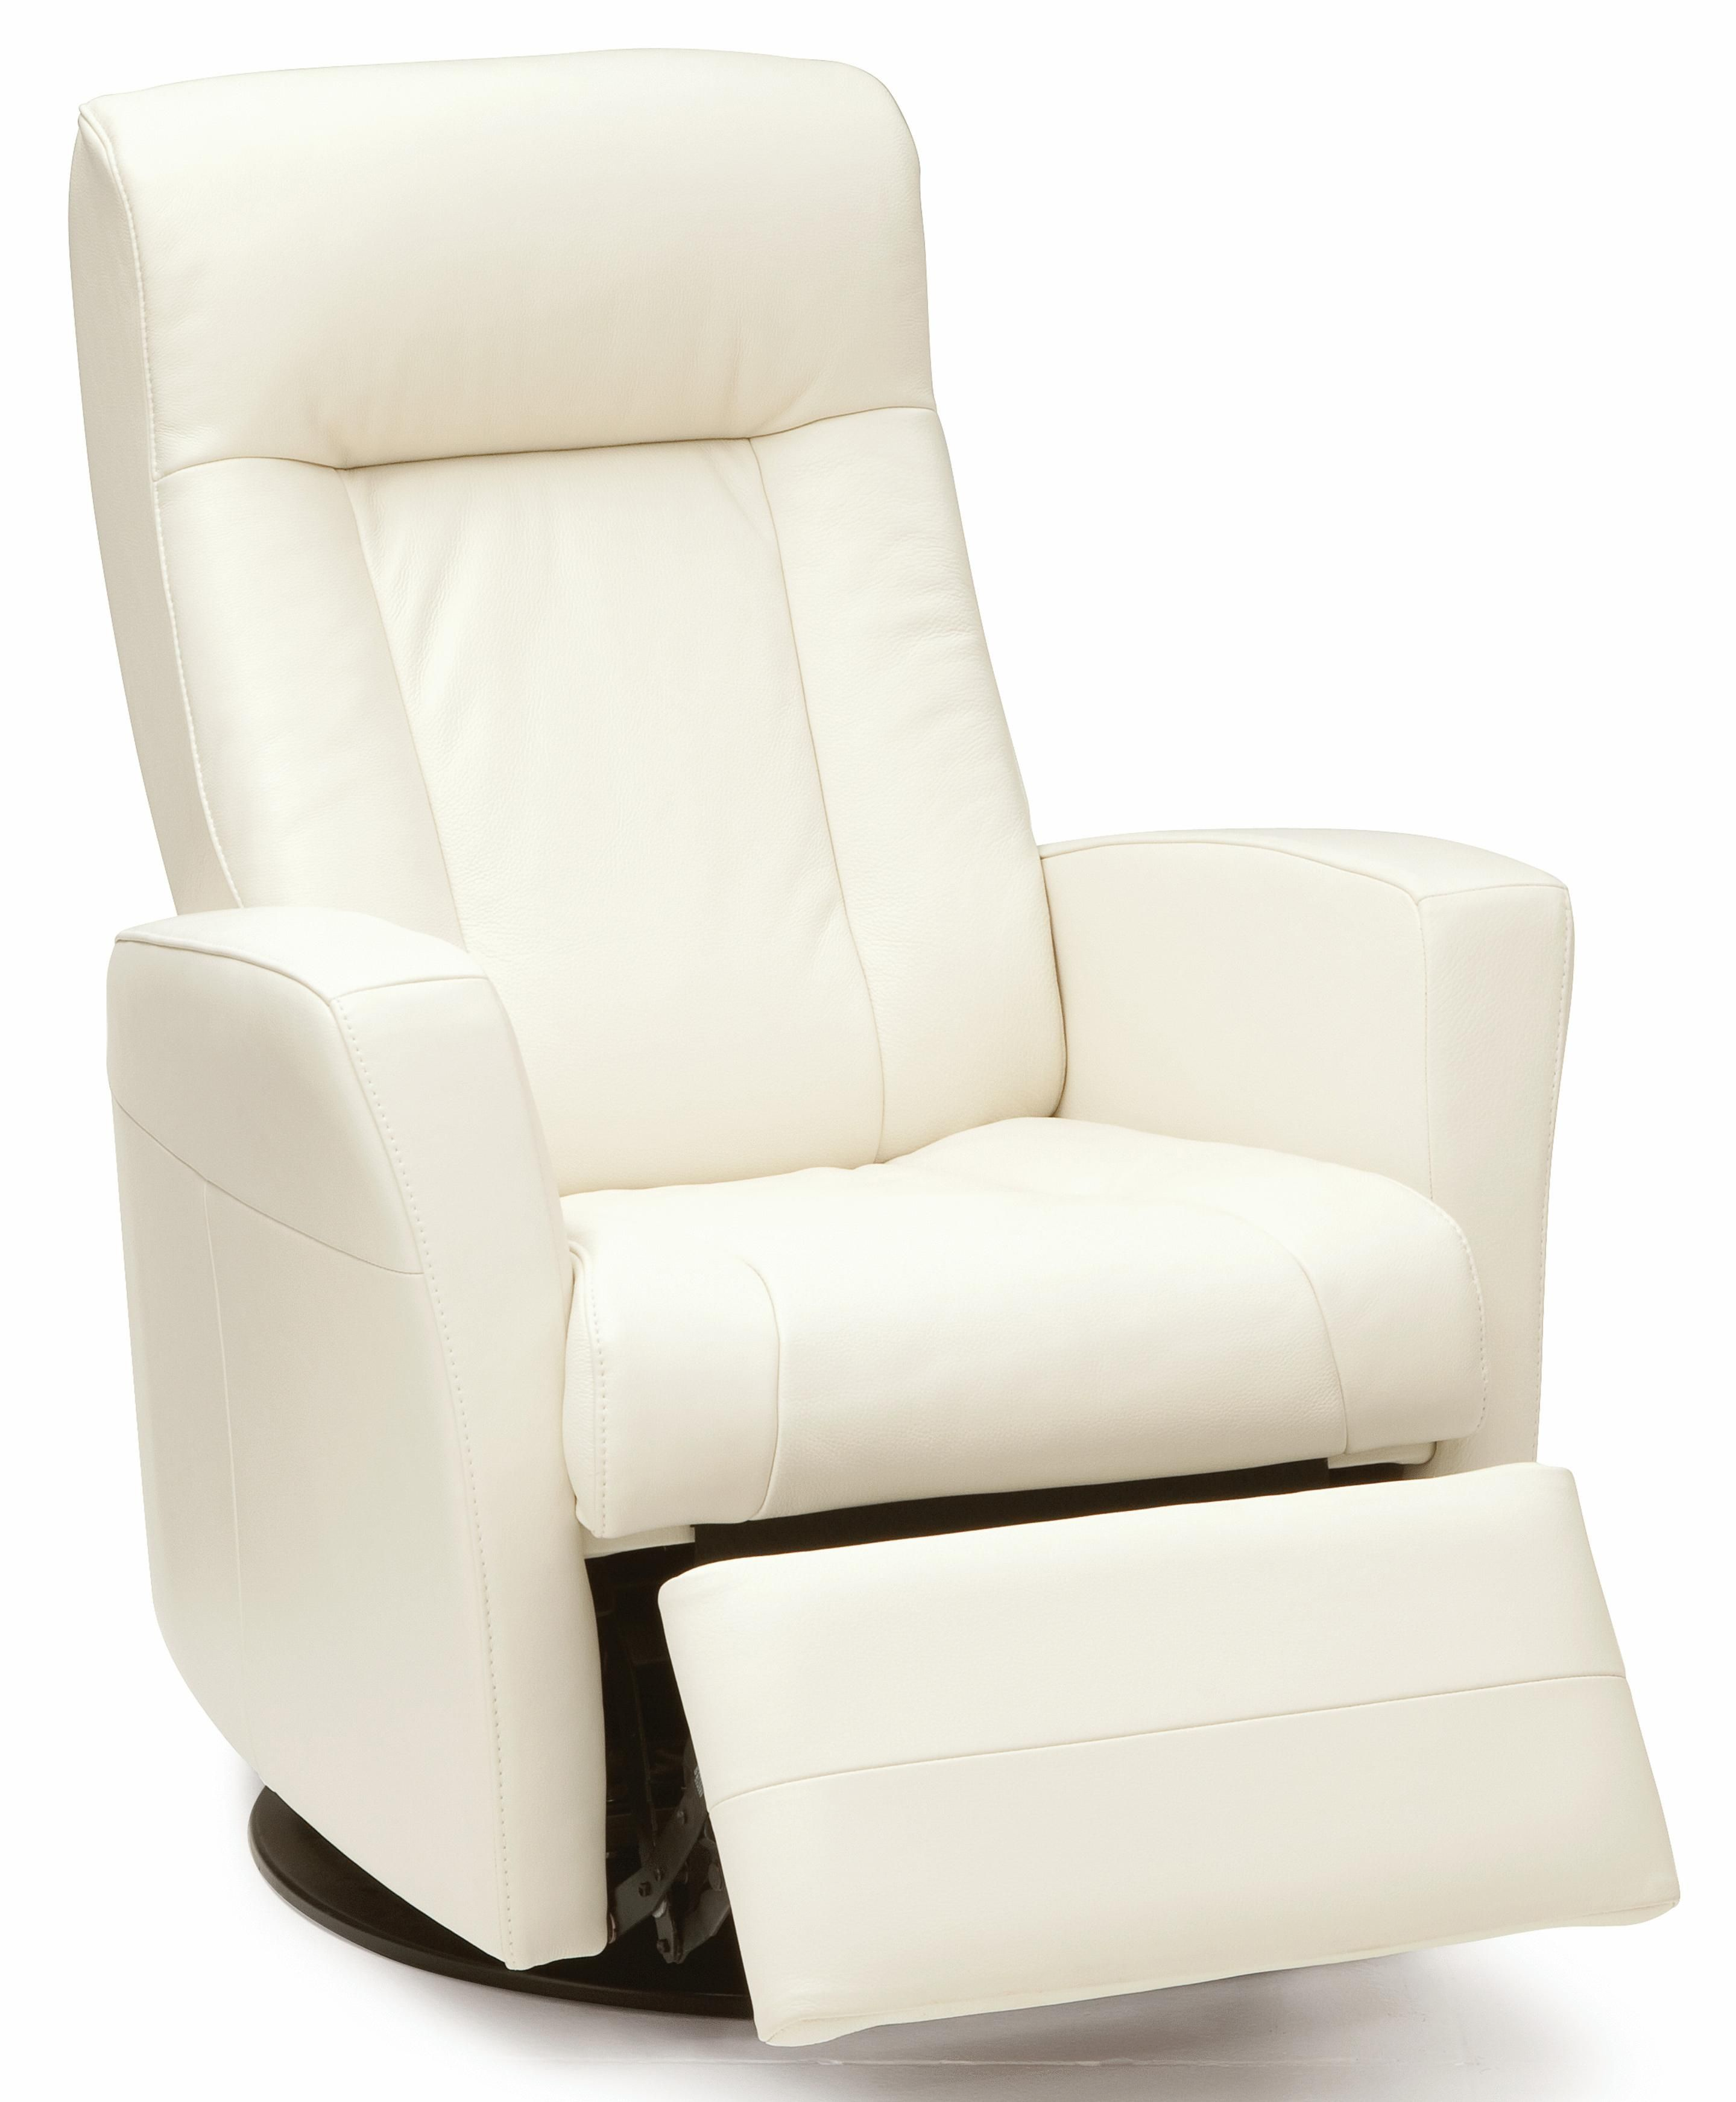 29 Quot Wide No Price Given Banff Power Swivel Glider